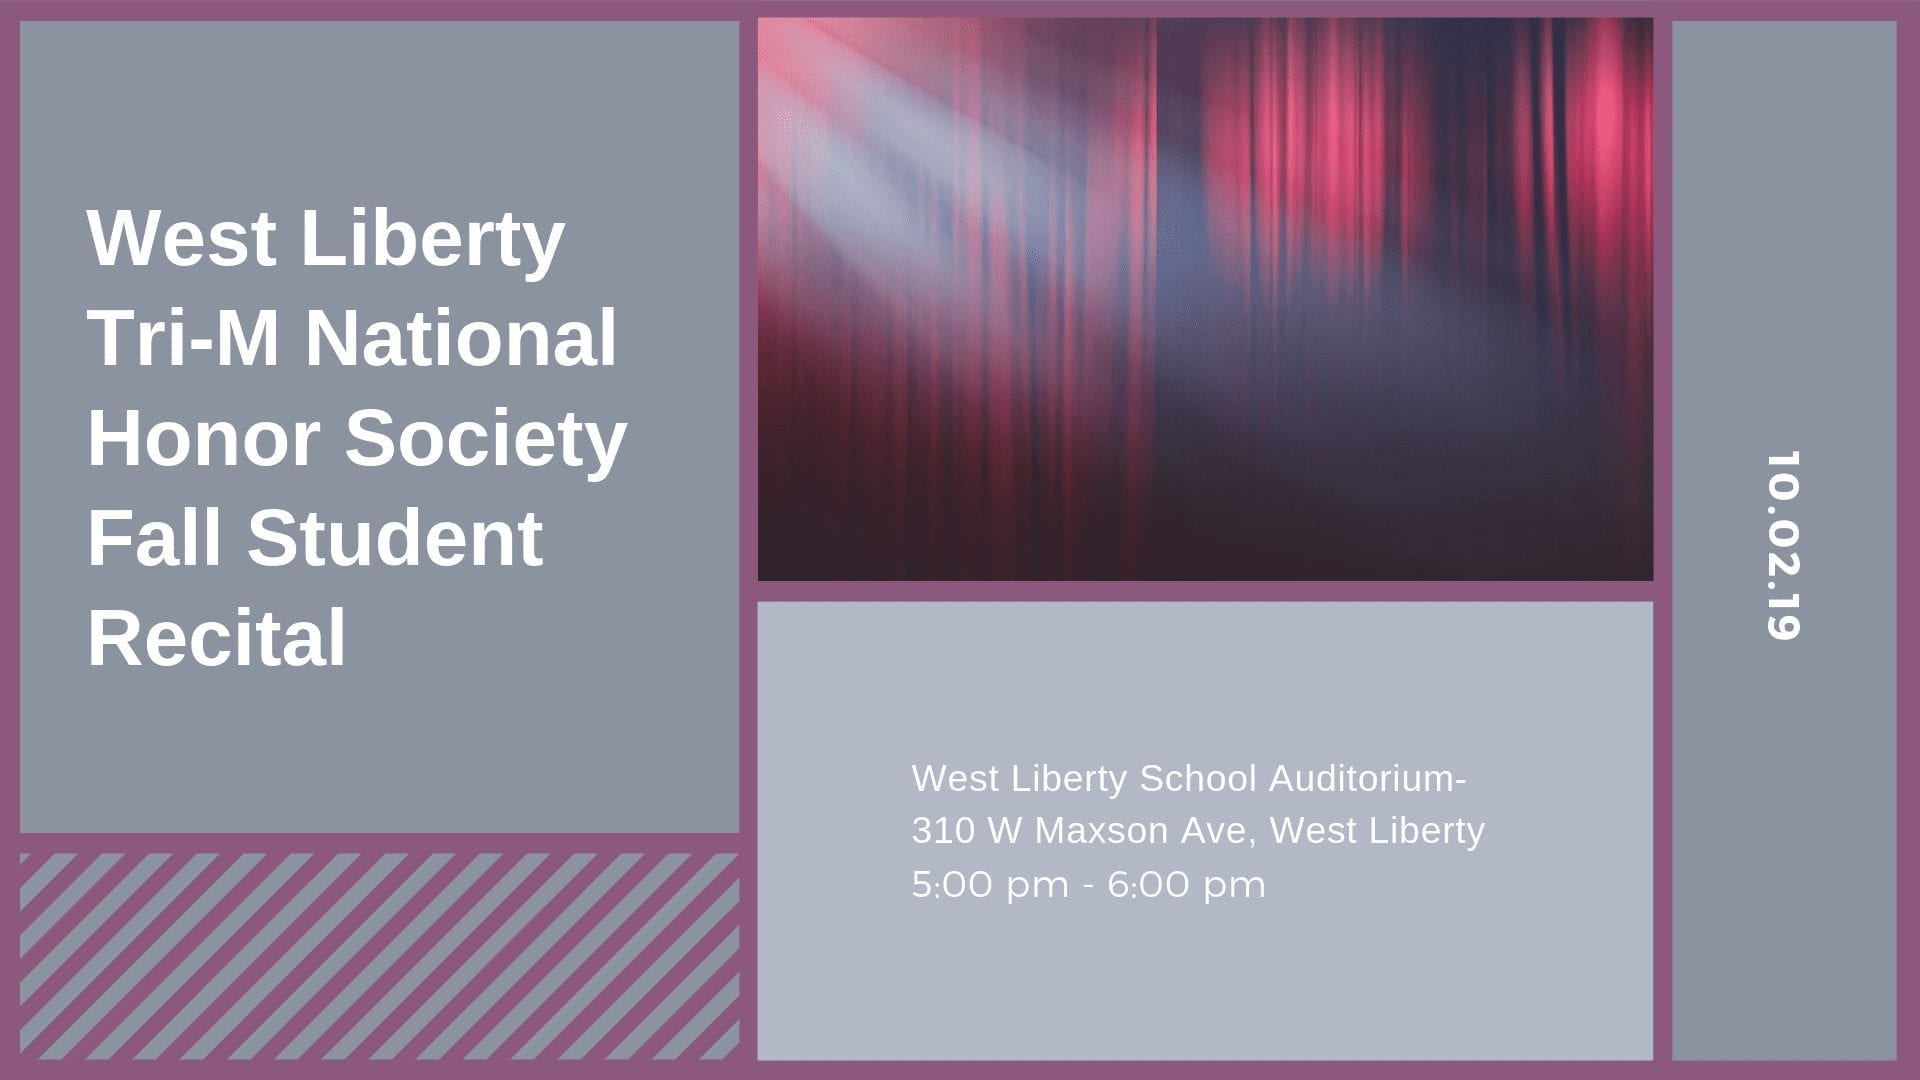 West Liberty Tri-M National Honor Society Fall Student Recital